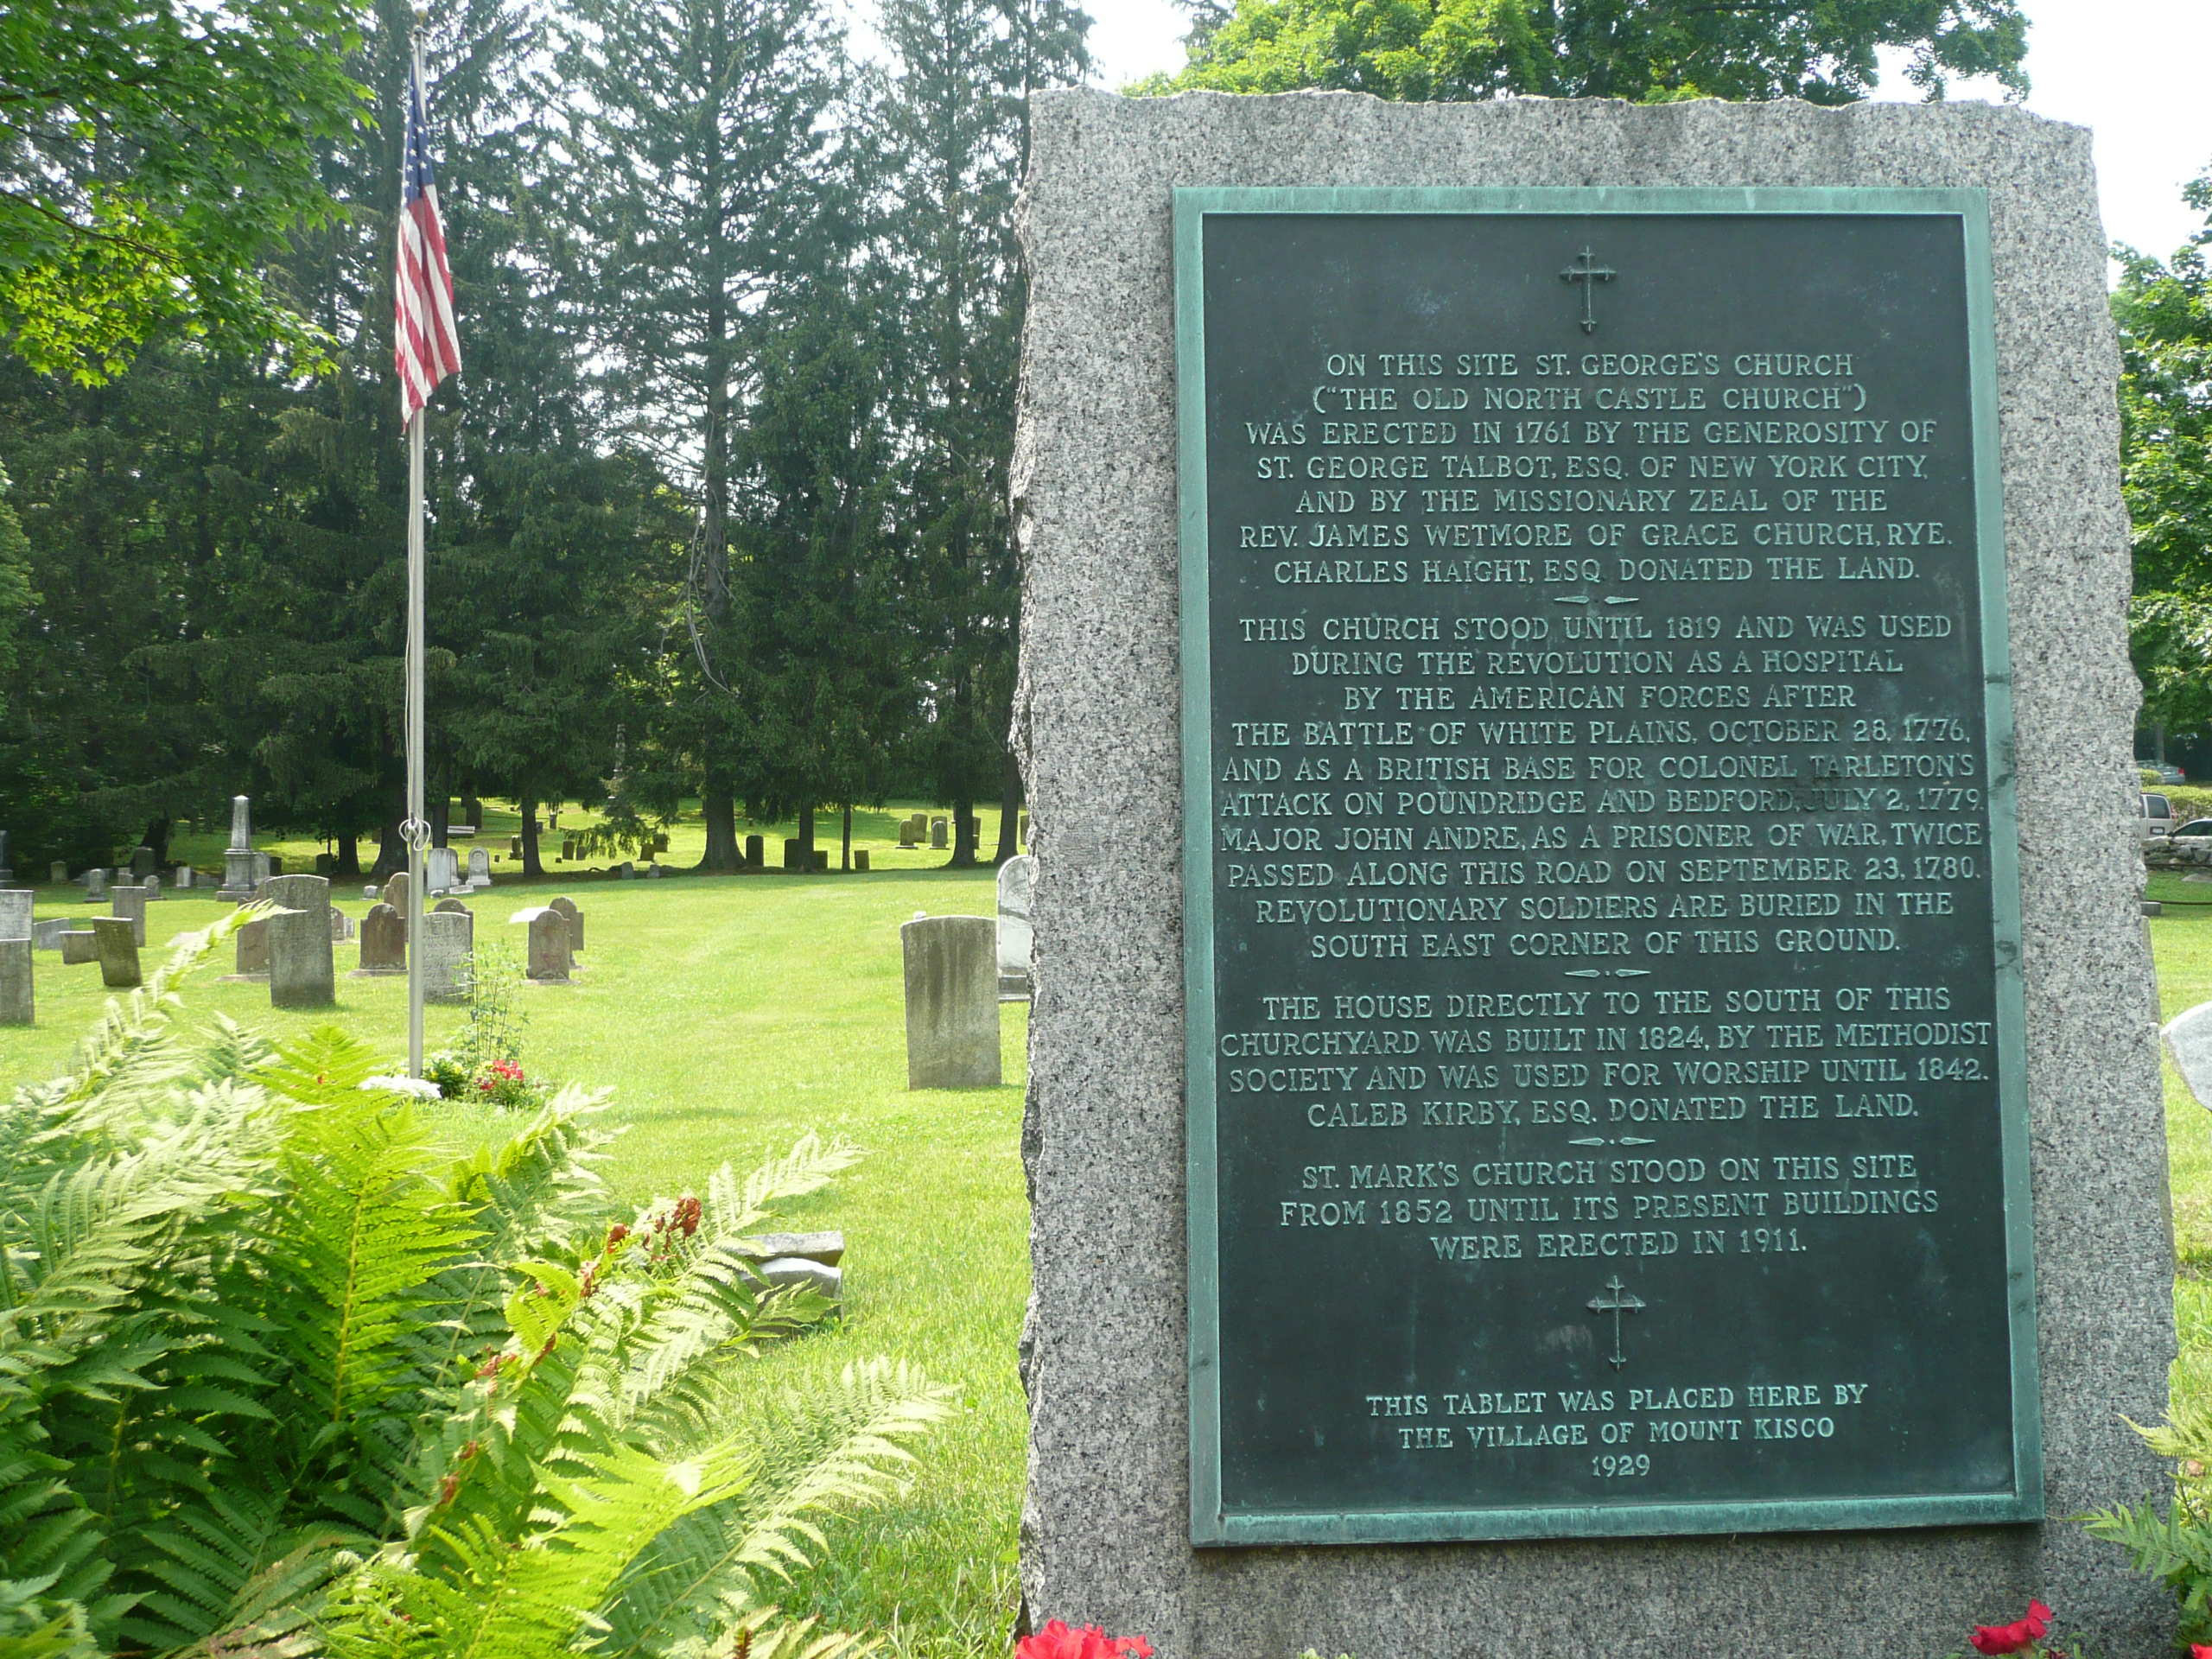 Tablet explaining the history of St. Mark's Cemetery.